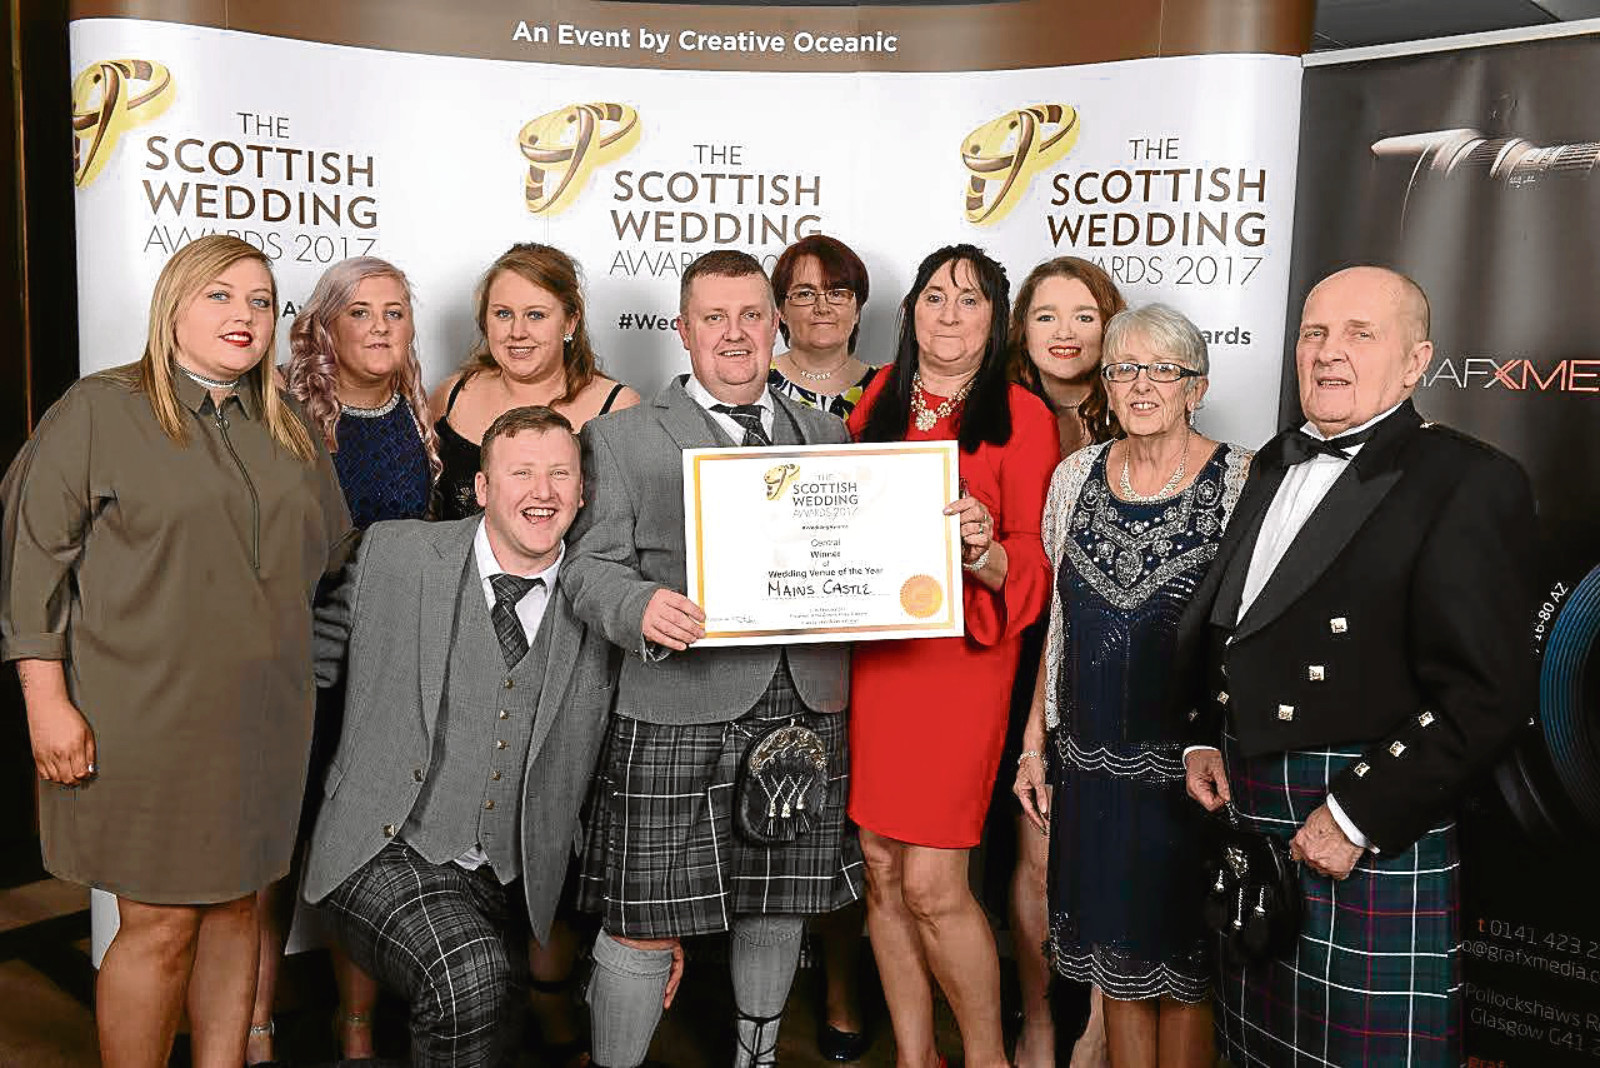 Mains Castle wins wedding venue of the year for the central area at Scottish Wedding Awards 2017